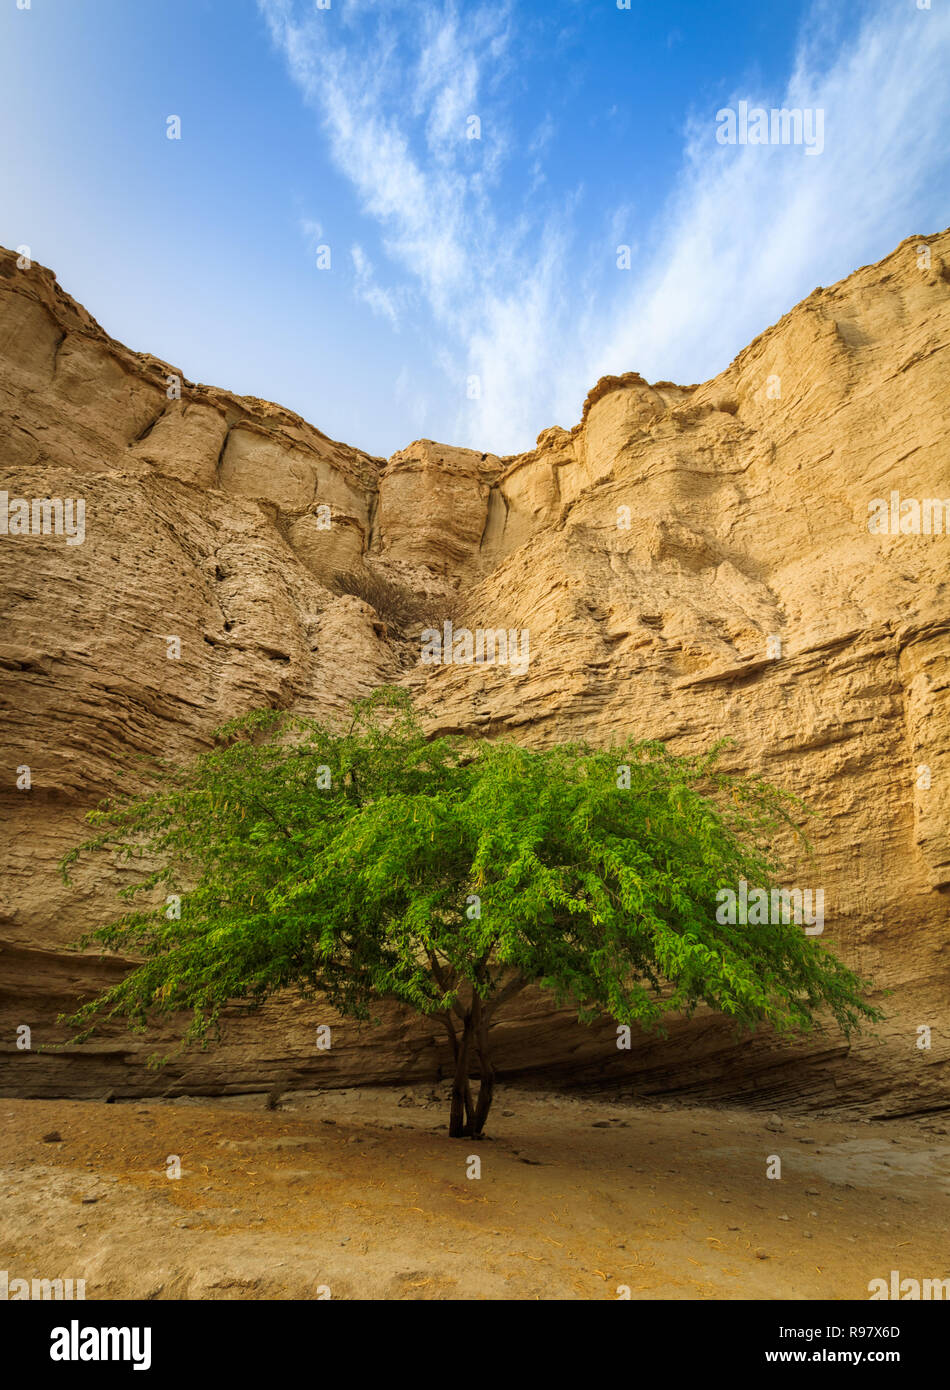 L'Iran. L'île de Qeshm,Lonely tree Photo Stock